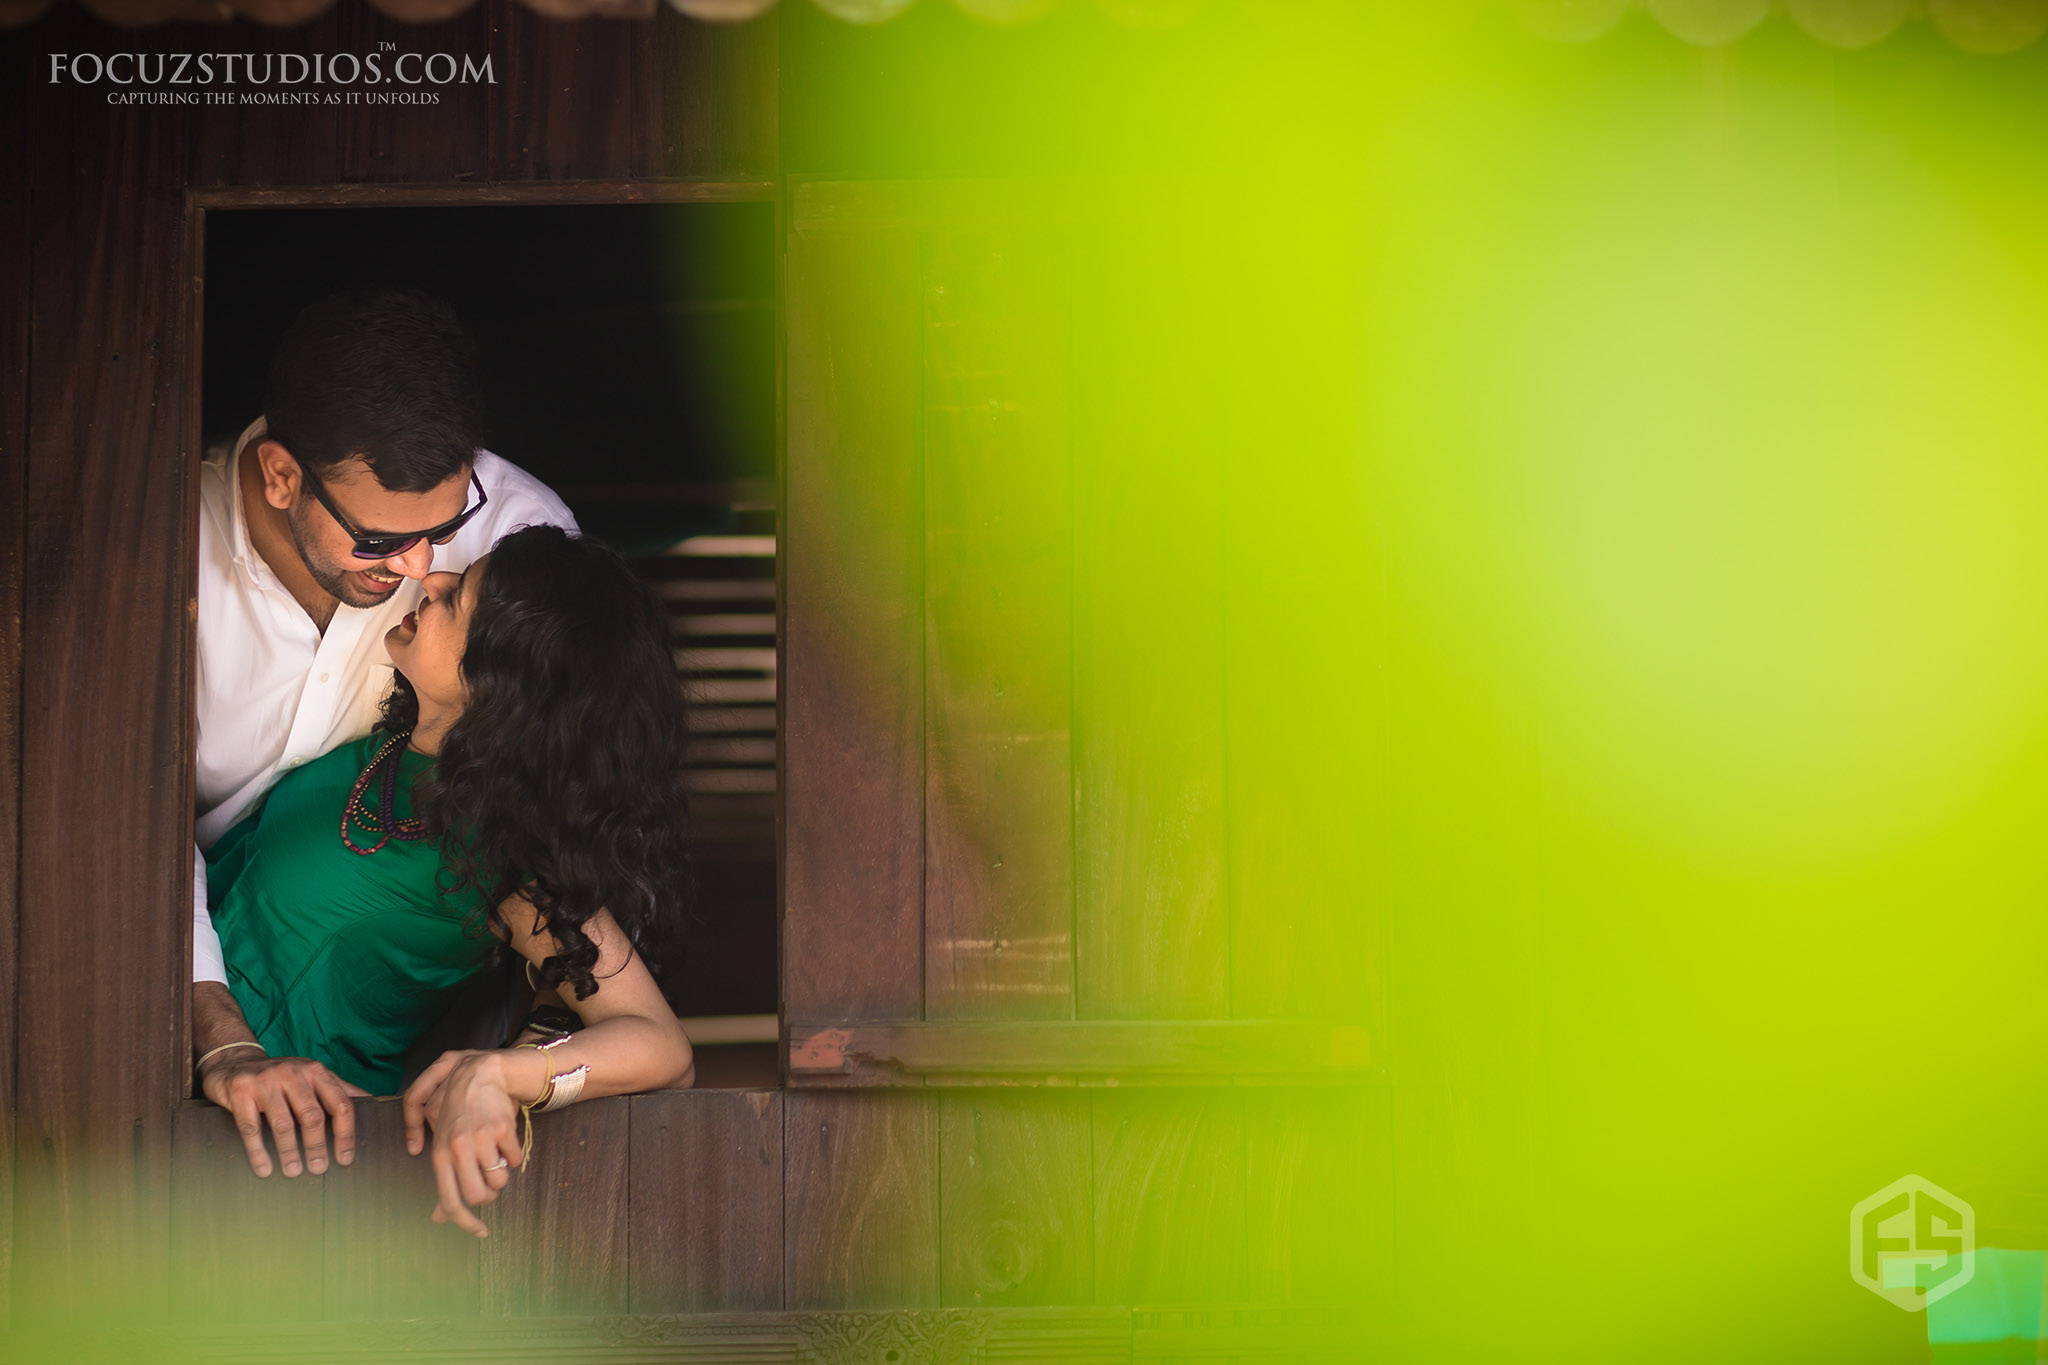 pre-wedding-photoshooting-focuz-studios8